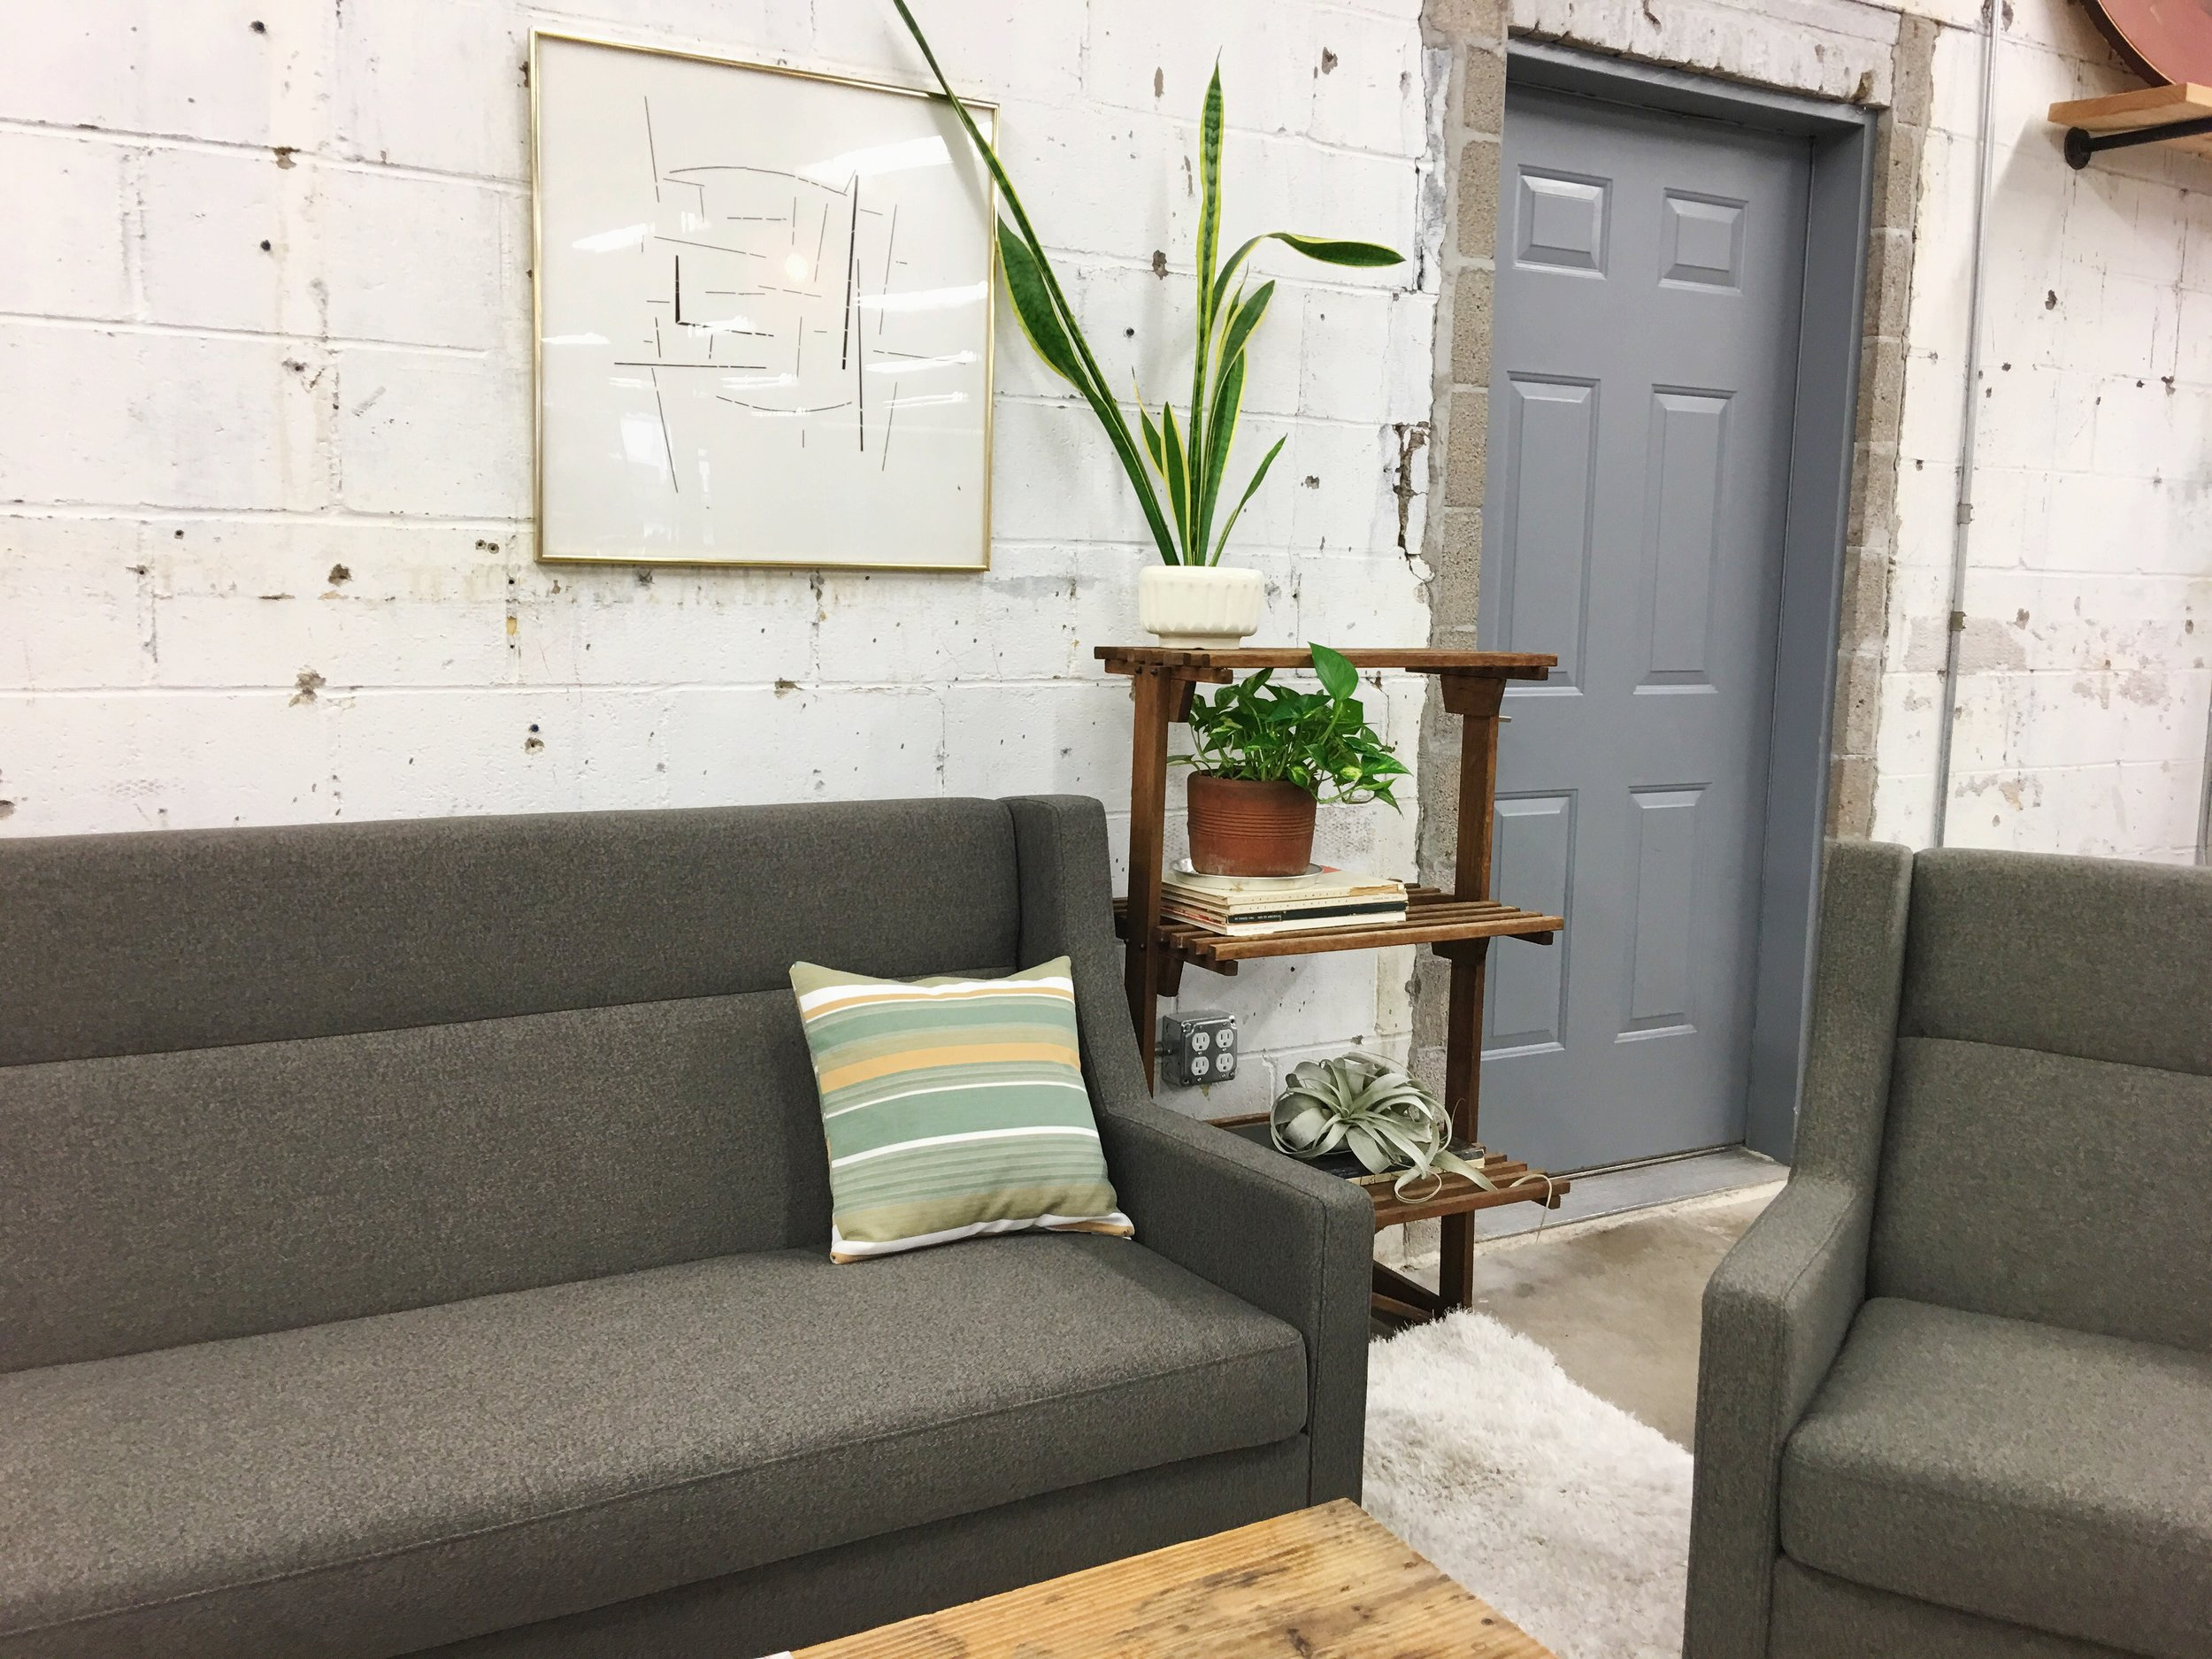 The  Gus* Modern Carmichael sofa and chair  are both available to order through our shop in multiple fabrics.